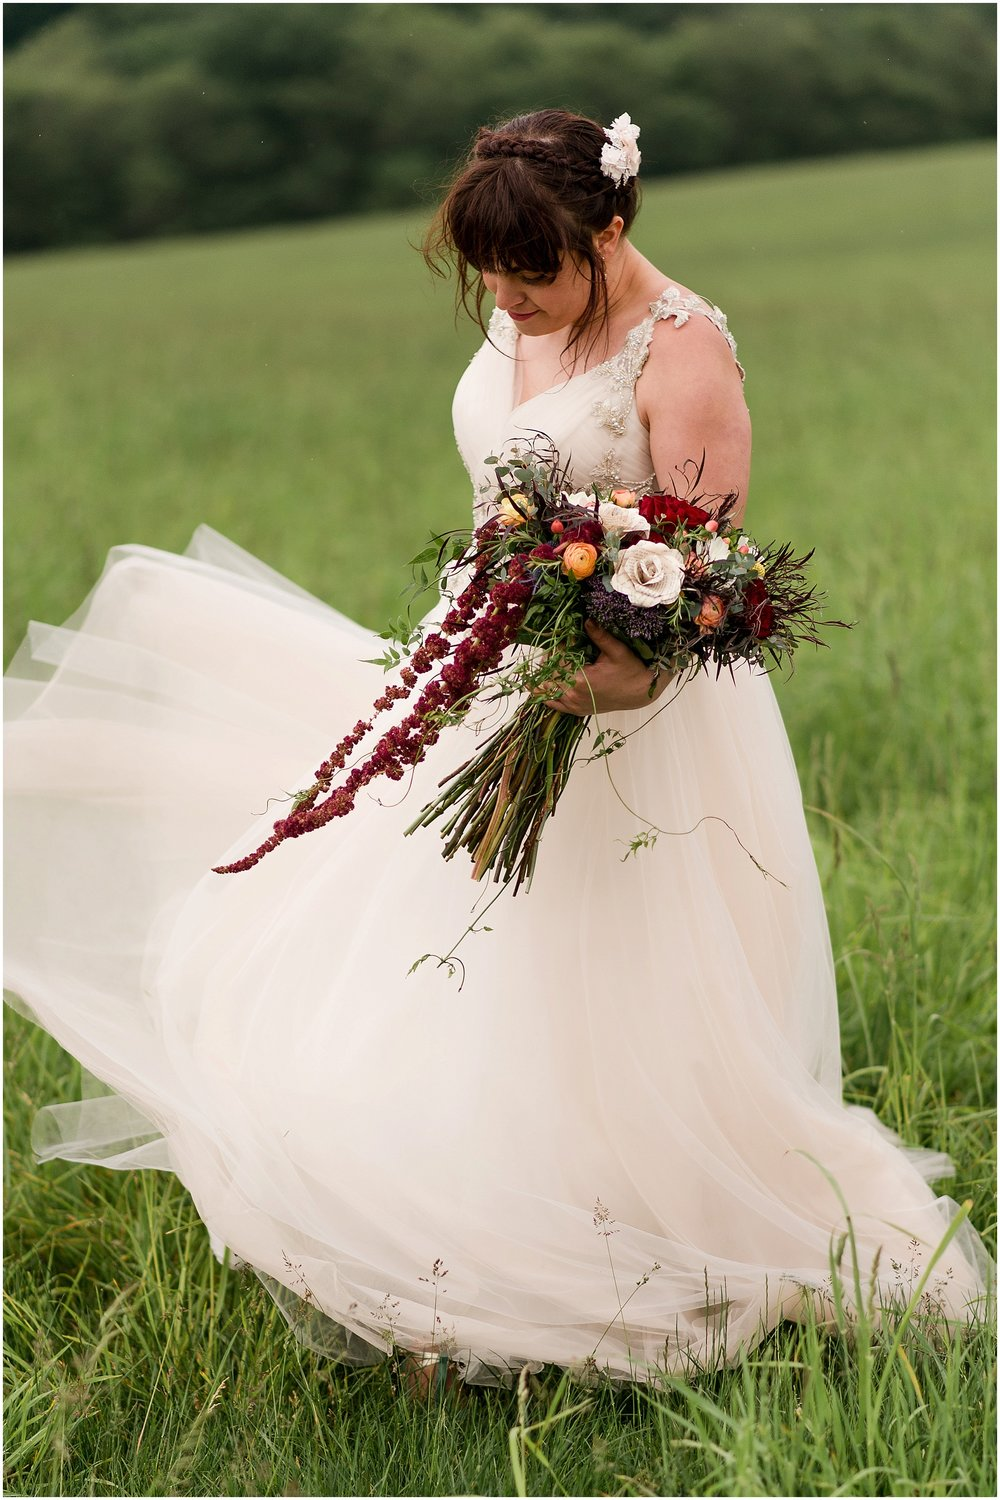 Hannah Leigh Photography Spring Wyndridge Farm Wedding_4137.jpg